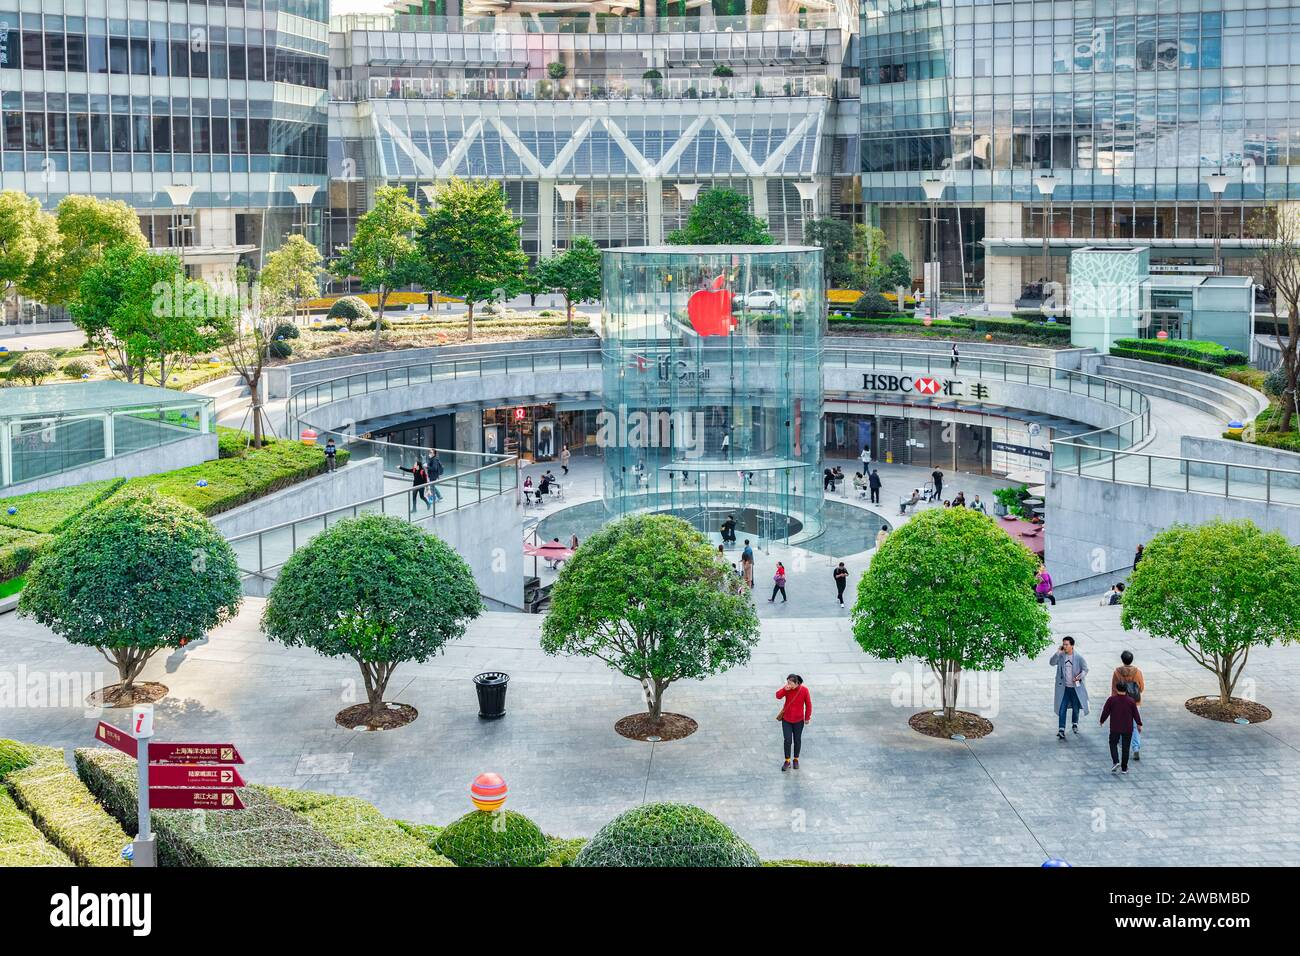 1 December 2018: Shanghai, China - IFC Mall, in the Pudong district, surrounded by the highrise buildings of the financial district. People strolling Stock Photo